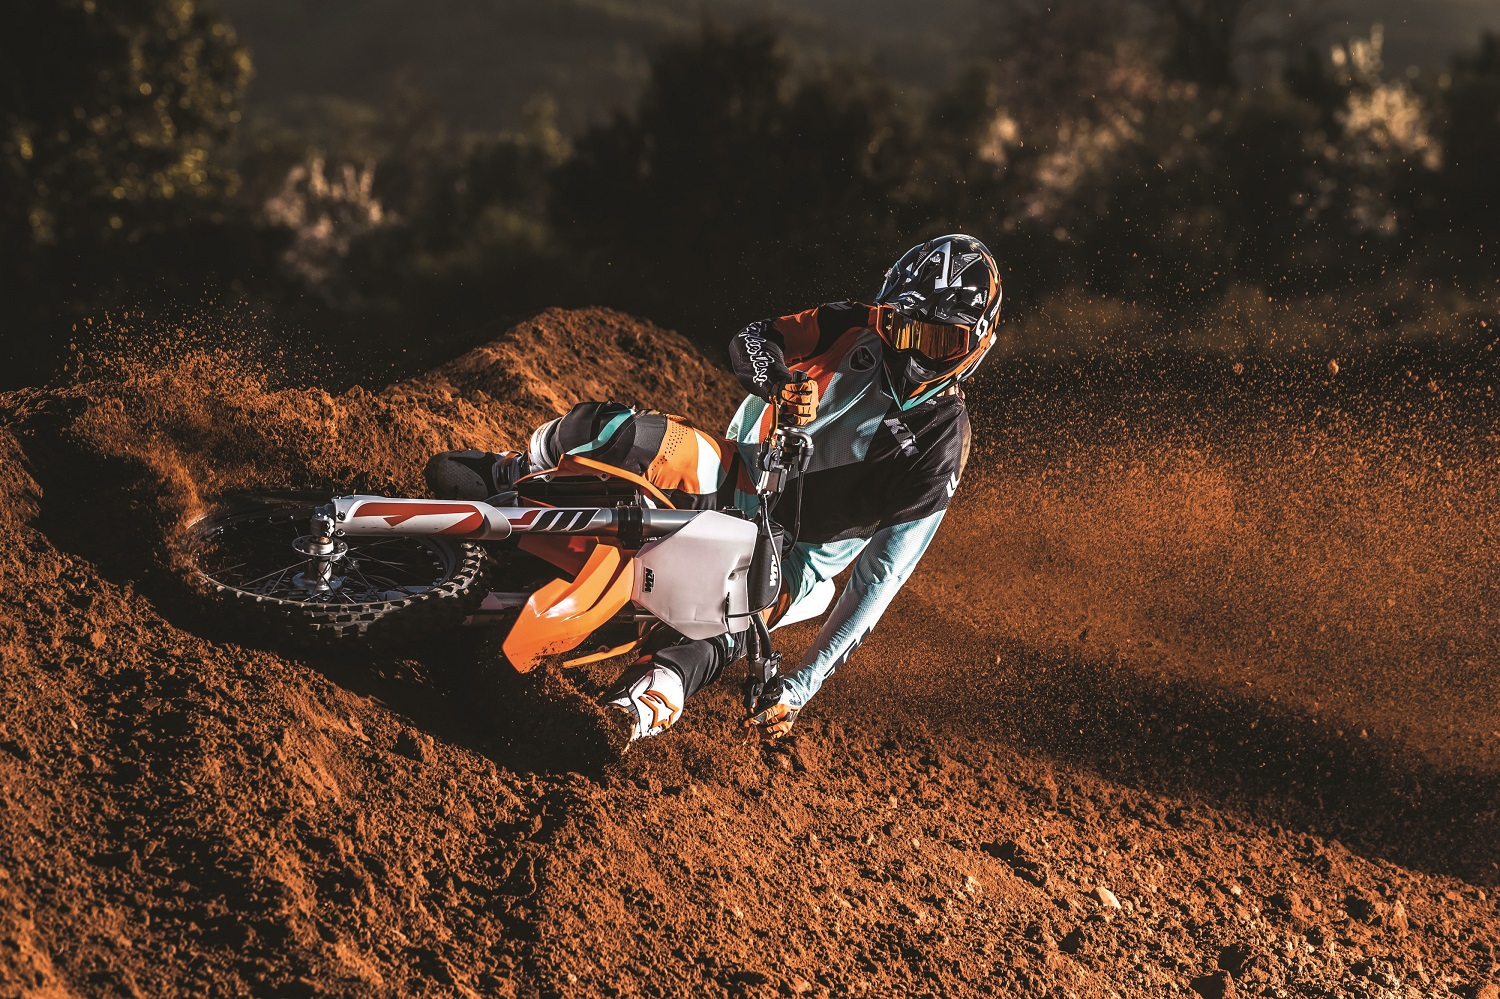 02_Action_KTM 350 SX-F MY2019